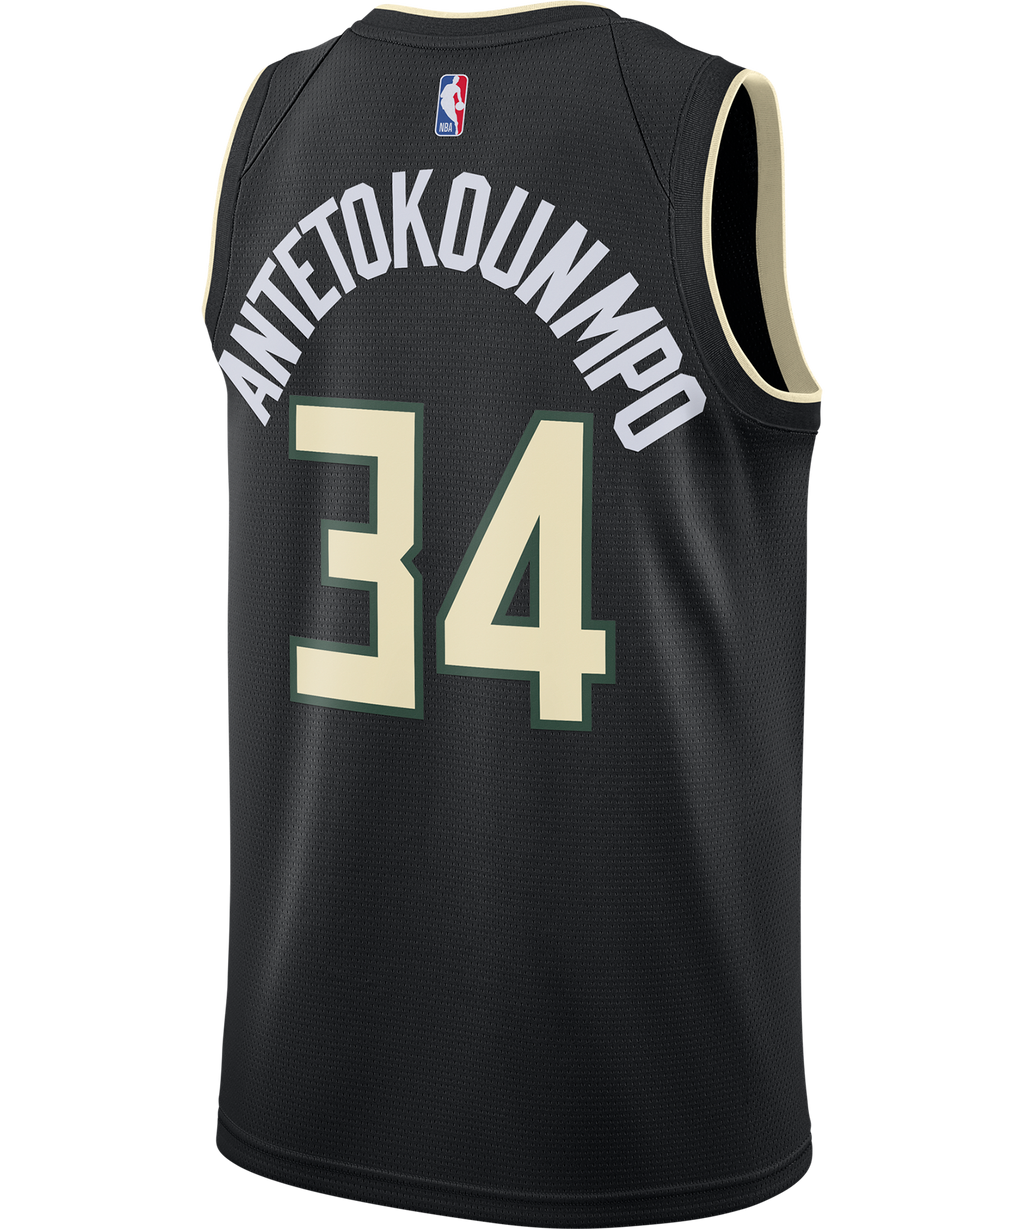 Giannis Antetokounmpo Milwaukee Bucks Jordan Statement Edition Jersey 20/21